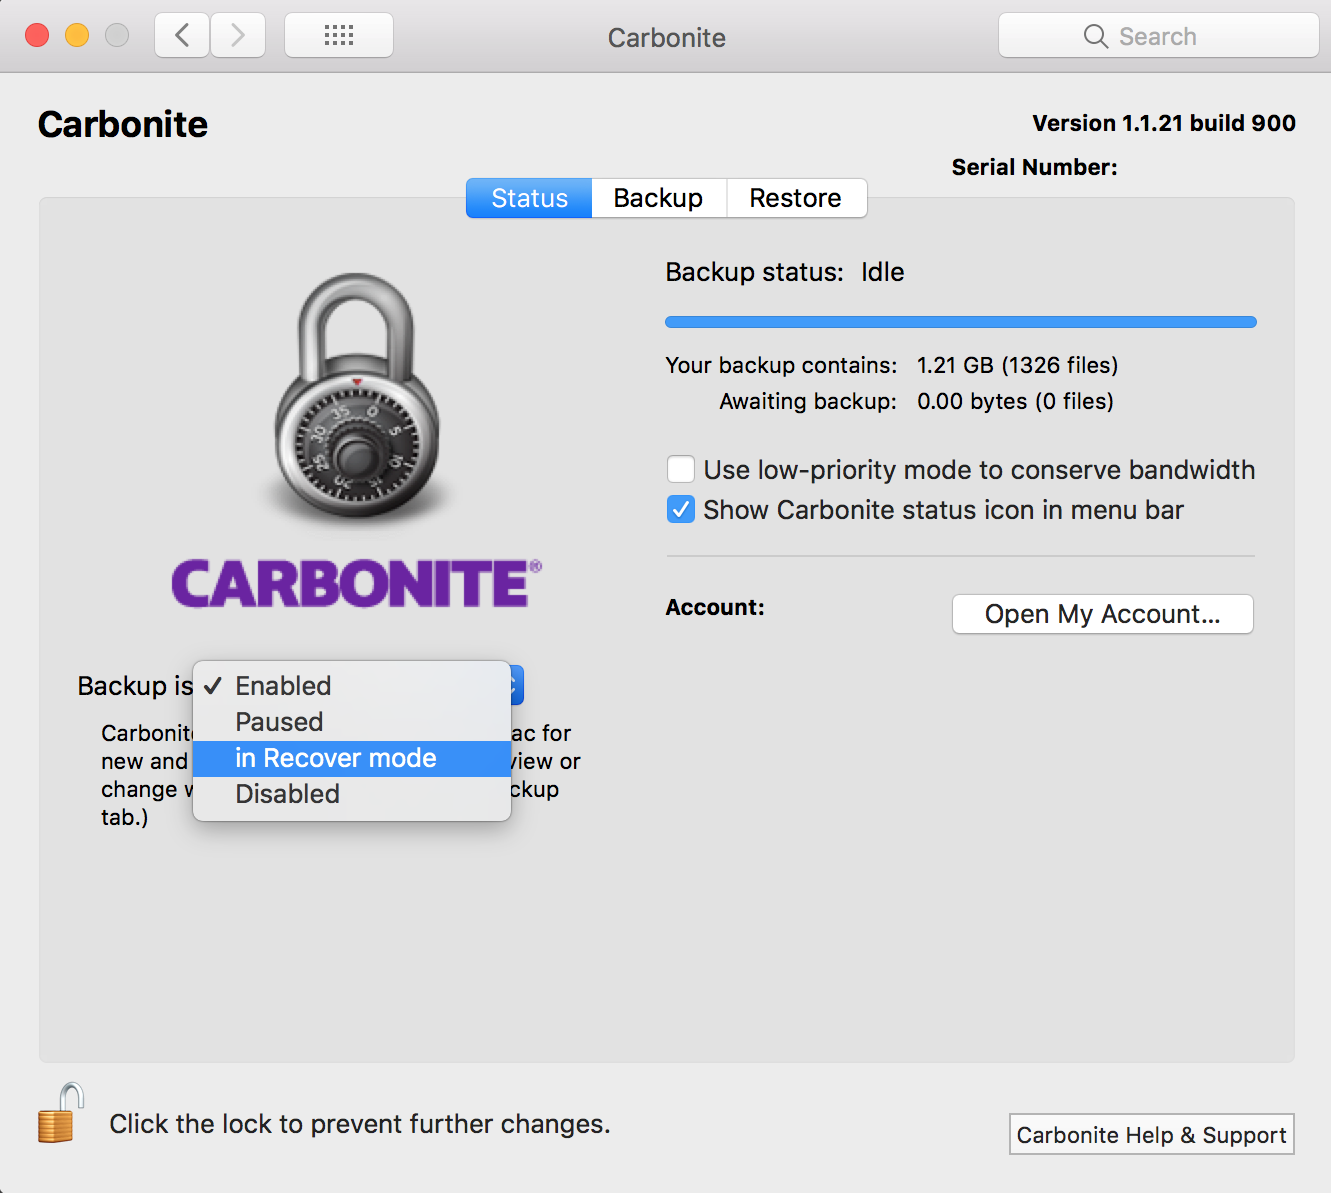 Carbonite Mac 1.x Client: Backup is in Recover mode